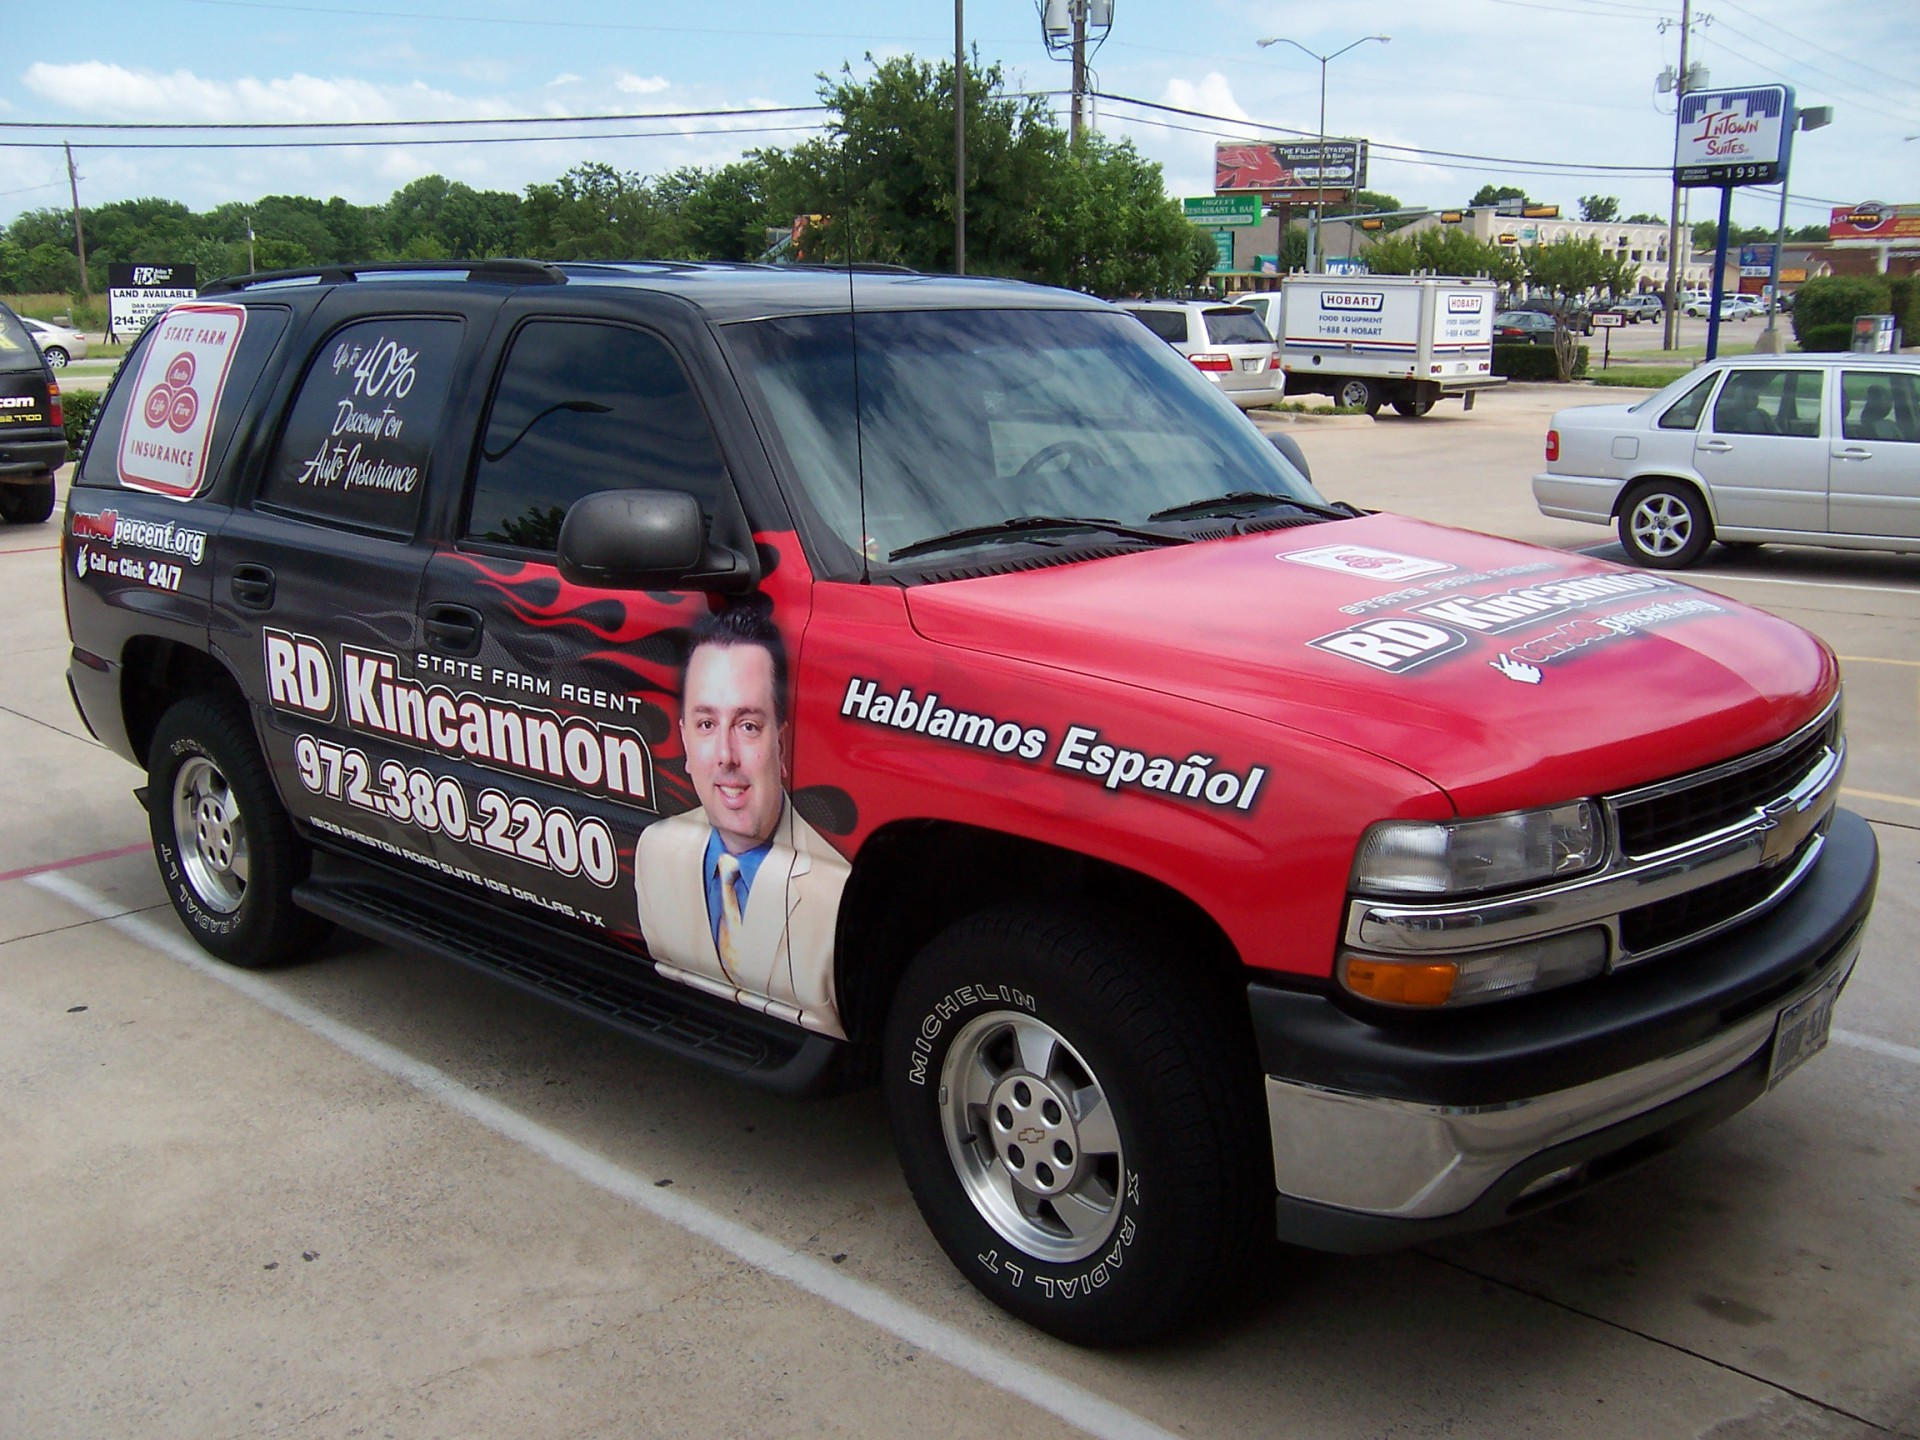 State Farm Agent RD Kincannon, State Farm Vehicle Wraps, vehicle wraps dallas tx